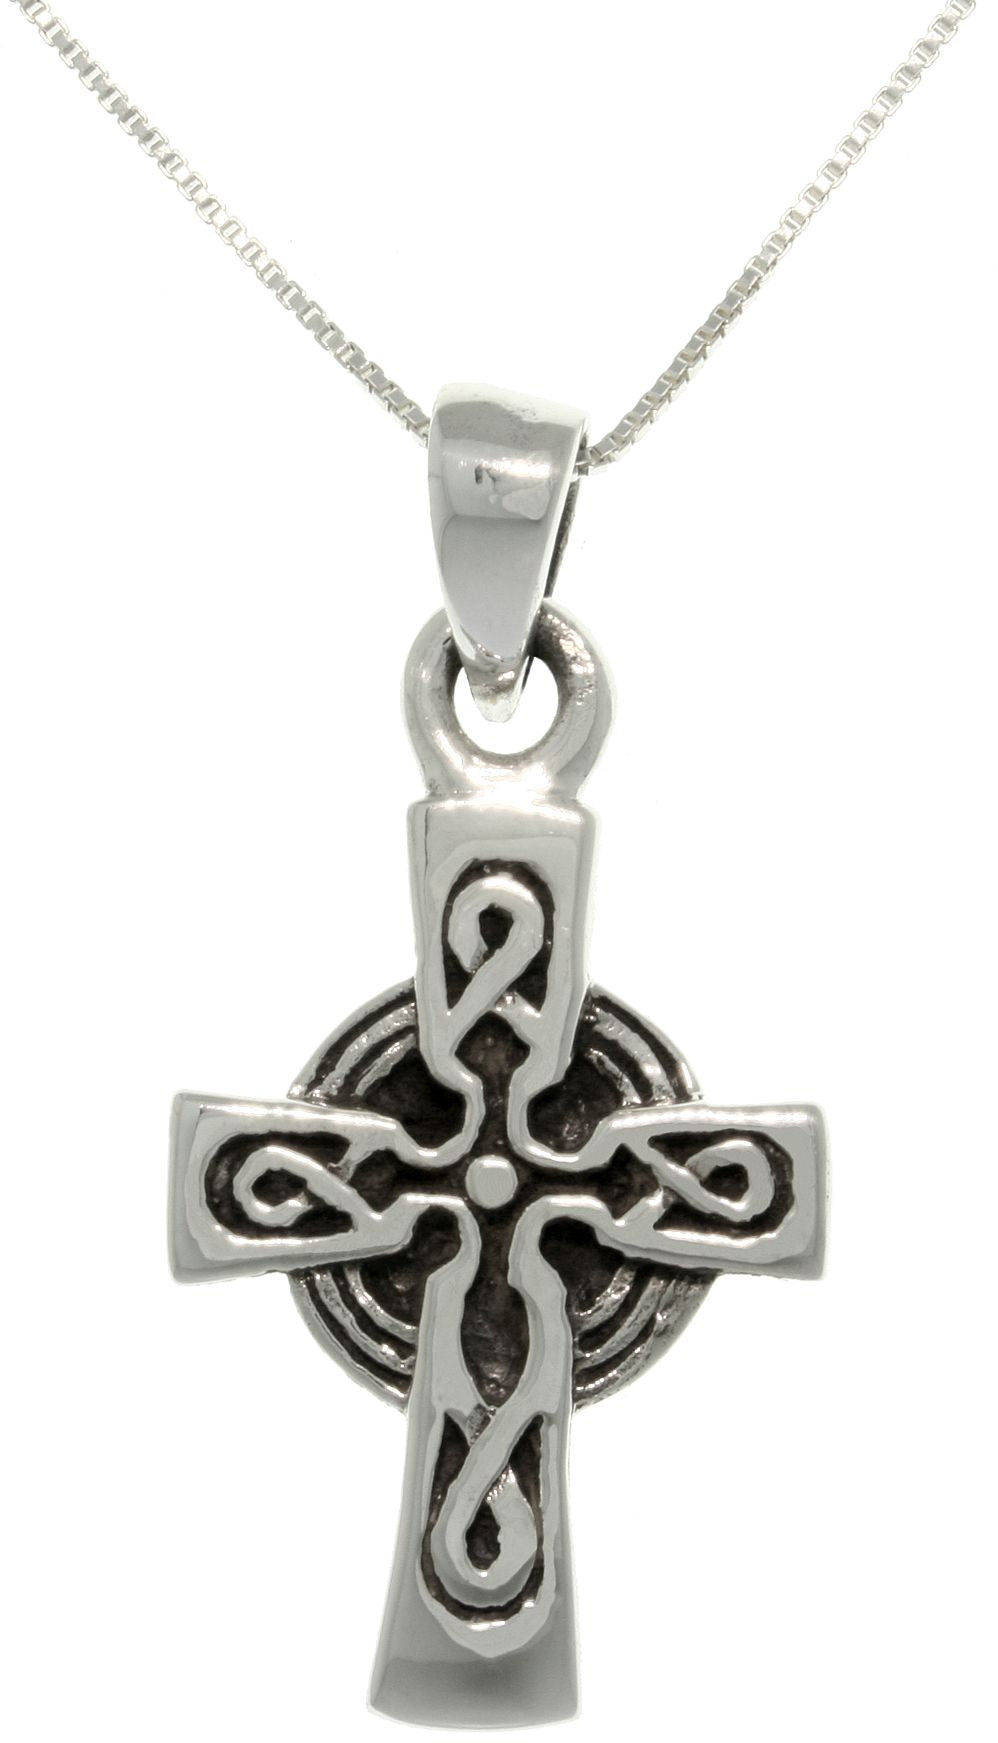 Jewelry Trends Sterling Silver Celtic Cross Pendant with 18 Inch Box Chain Necklace